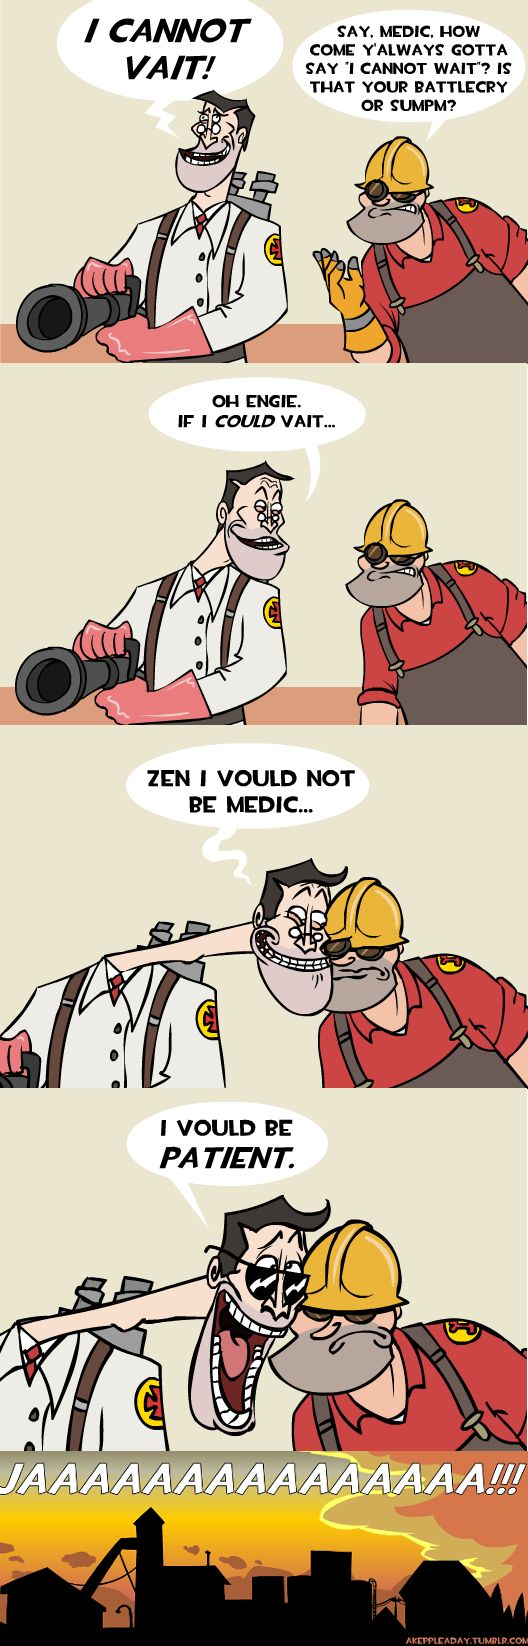 Tf2. A medic pun.. The jaaaa at the end killed me XD